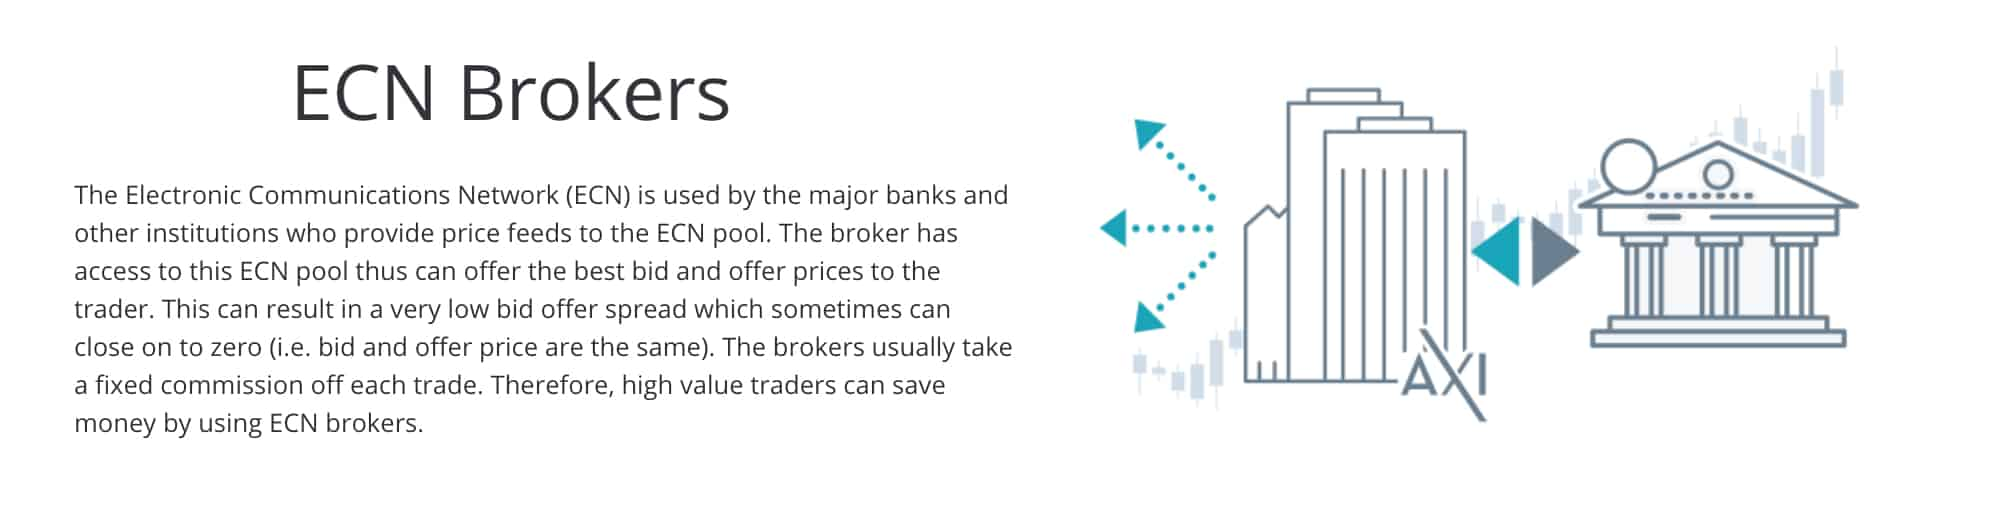 ECN Brokers Axitrader